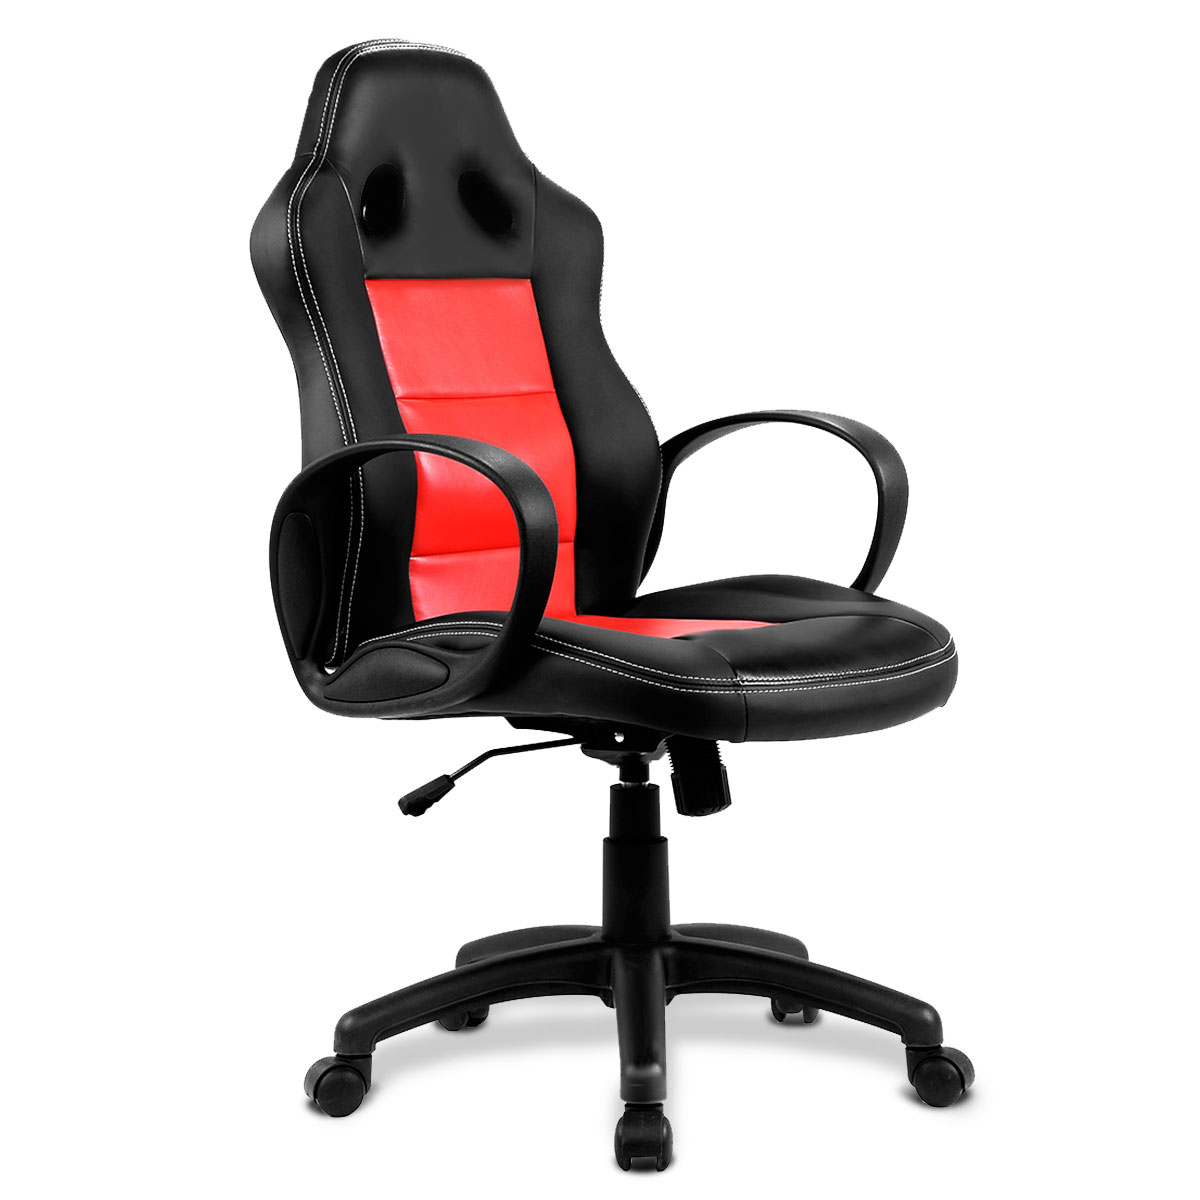 Red Desk Chair Costway High Back Race Car Style Bucket Seat Office Desk Chair Gaming Chair Red